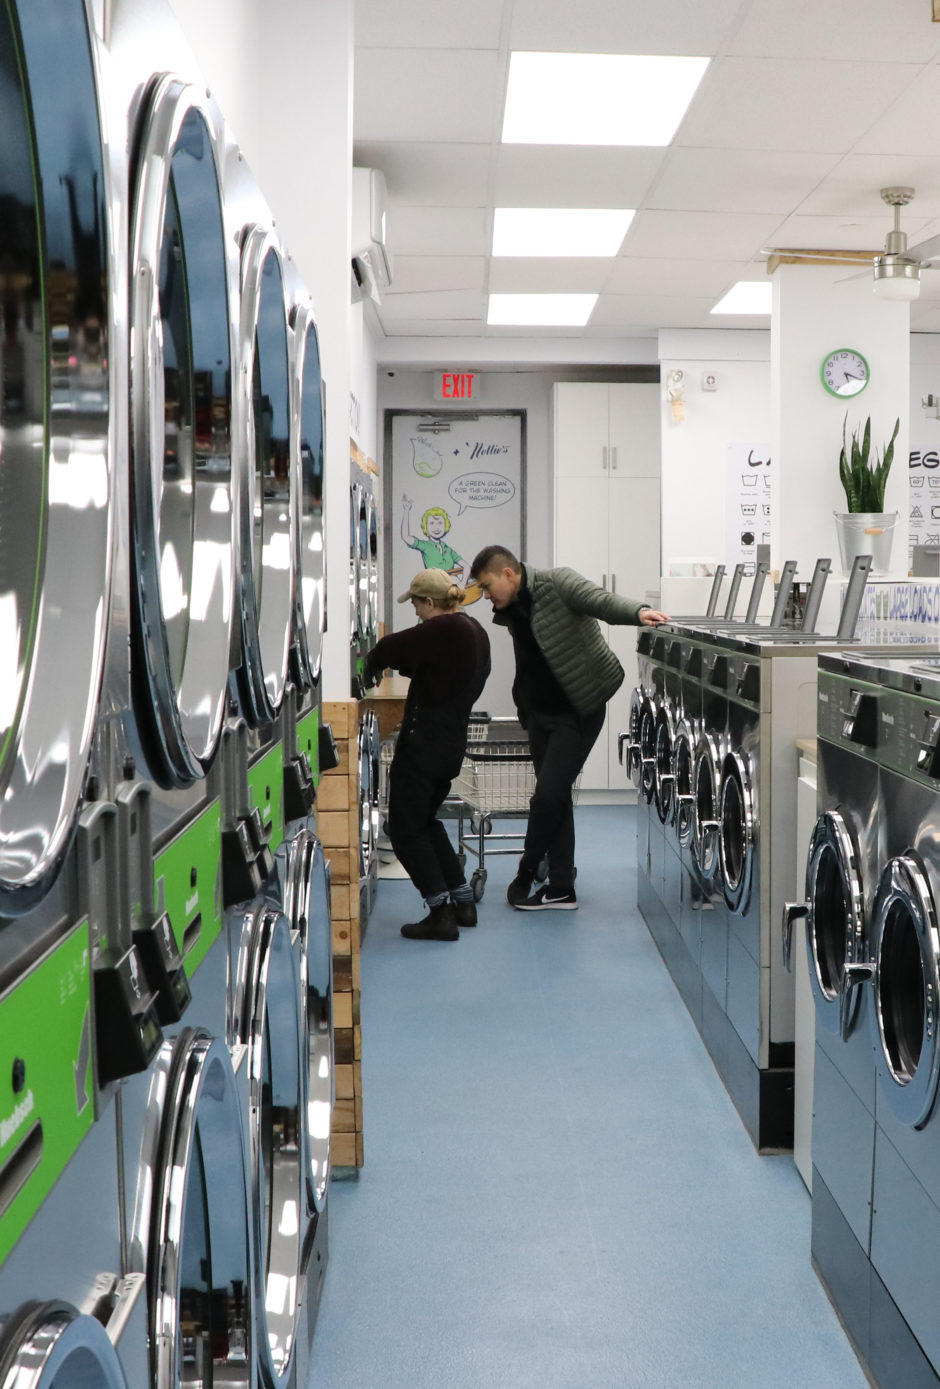 A staff member at a laundromat shows a customer how to use a dryer